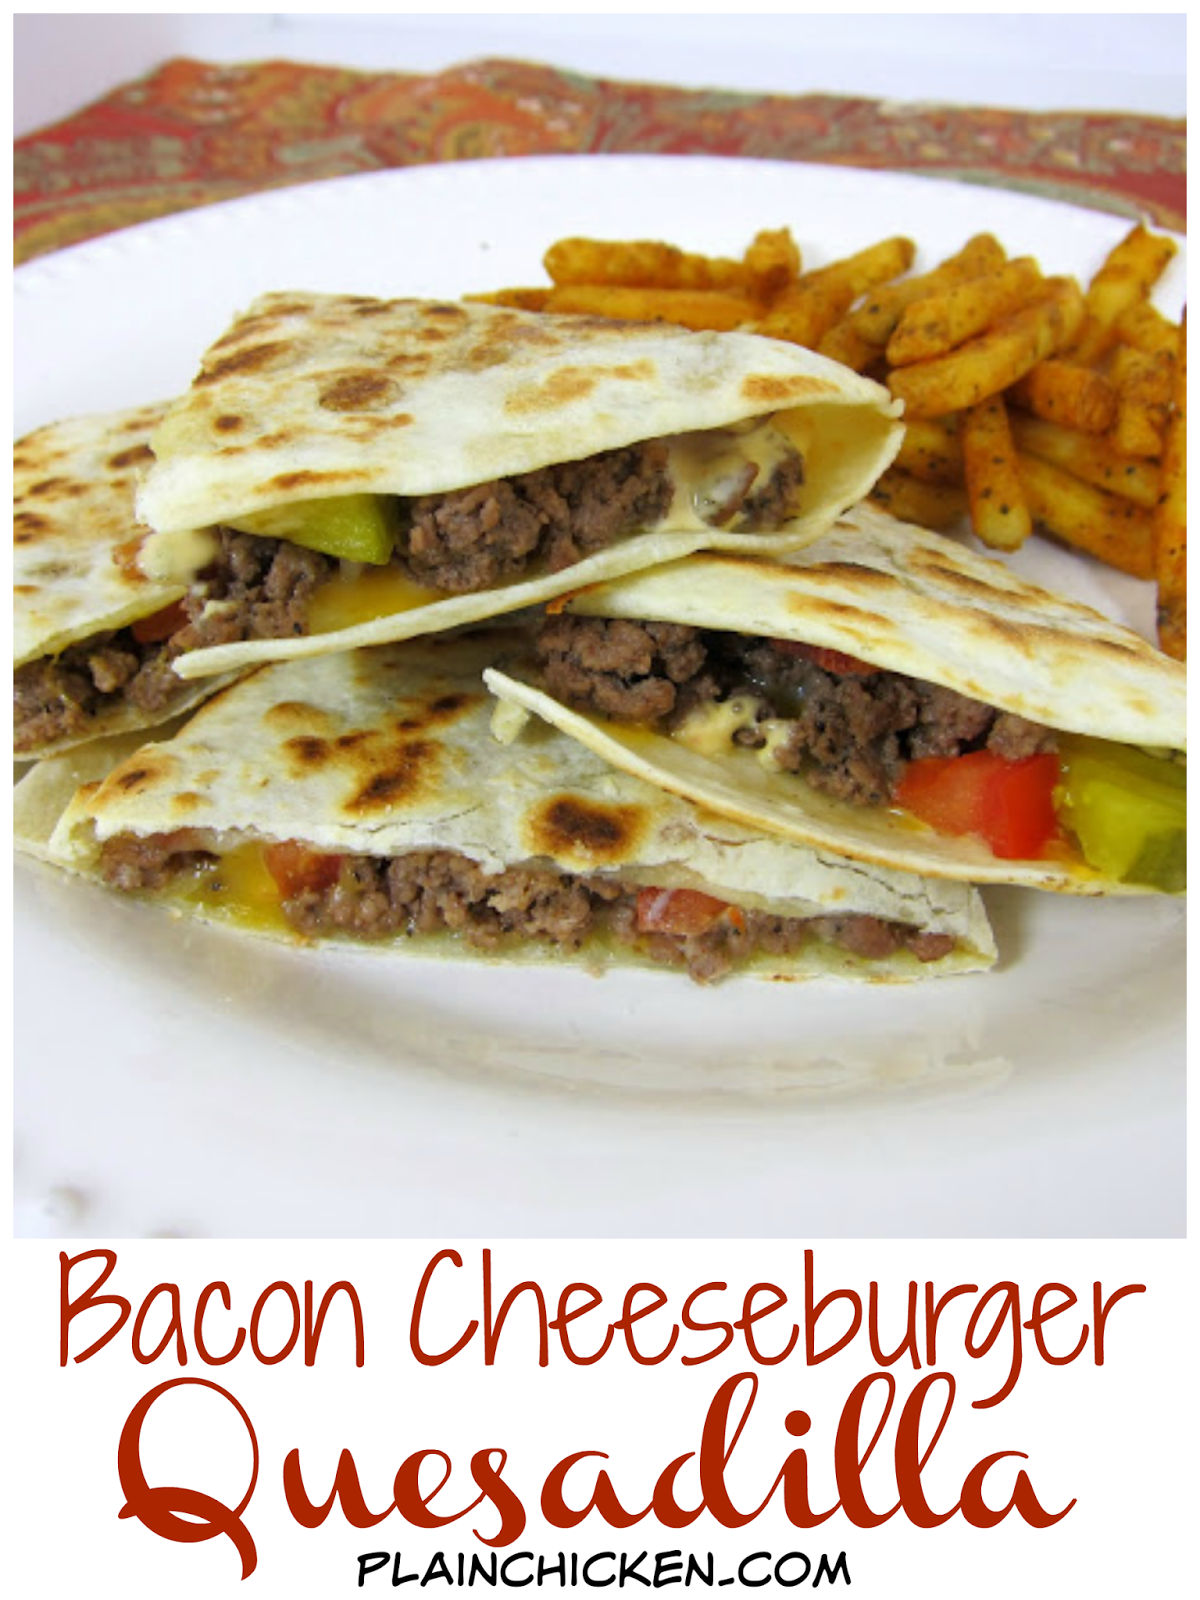 Bacon Cheeseburger Quesadillas - all the flavors of a bacon cheeseburger in a quesadilla! Can use ground turkey, turkey bacon and wheat tortillas for a healthy weekday meal.